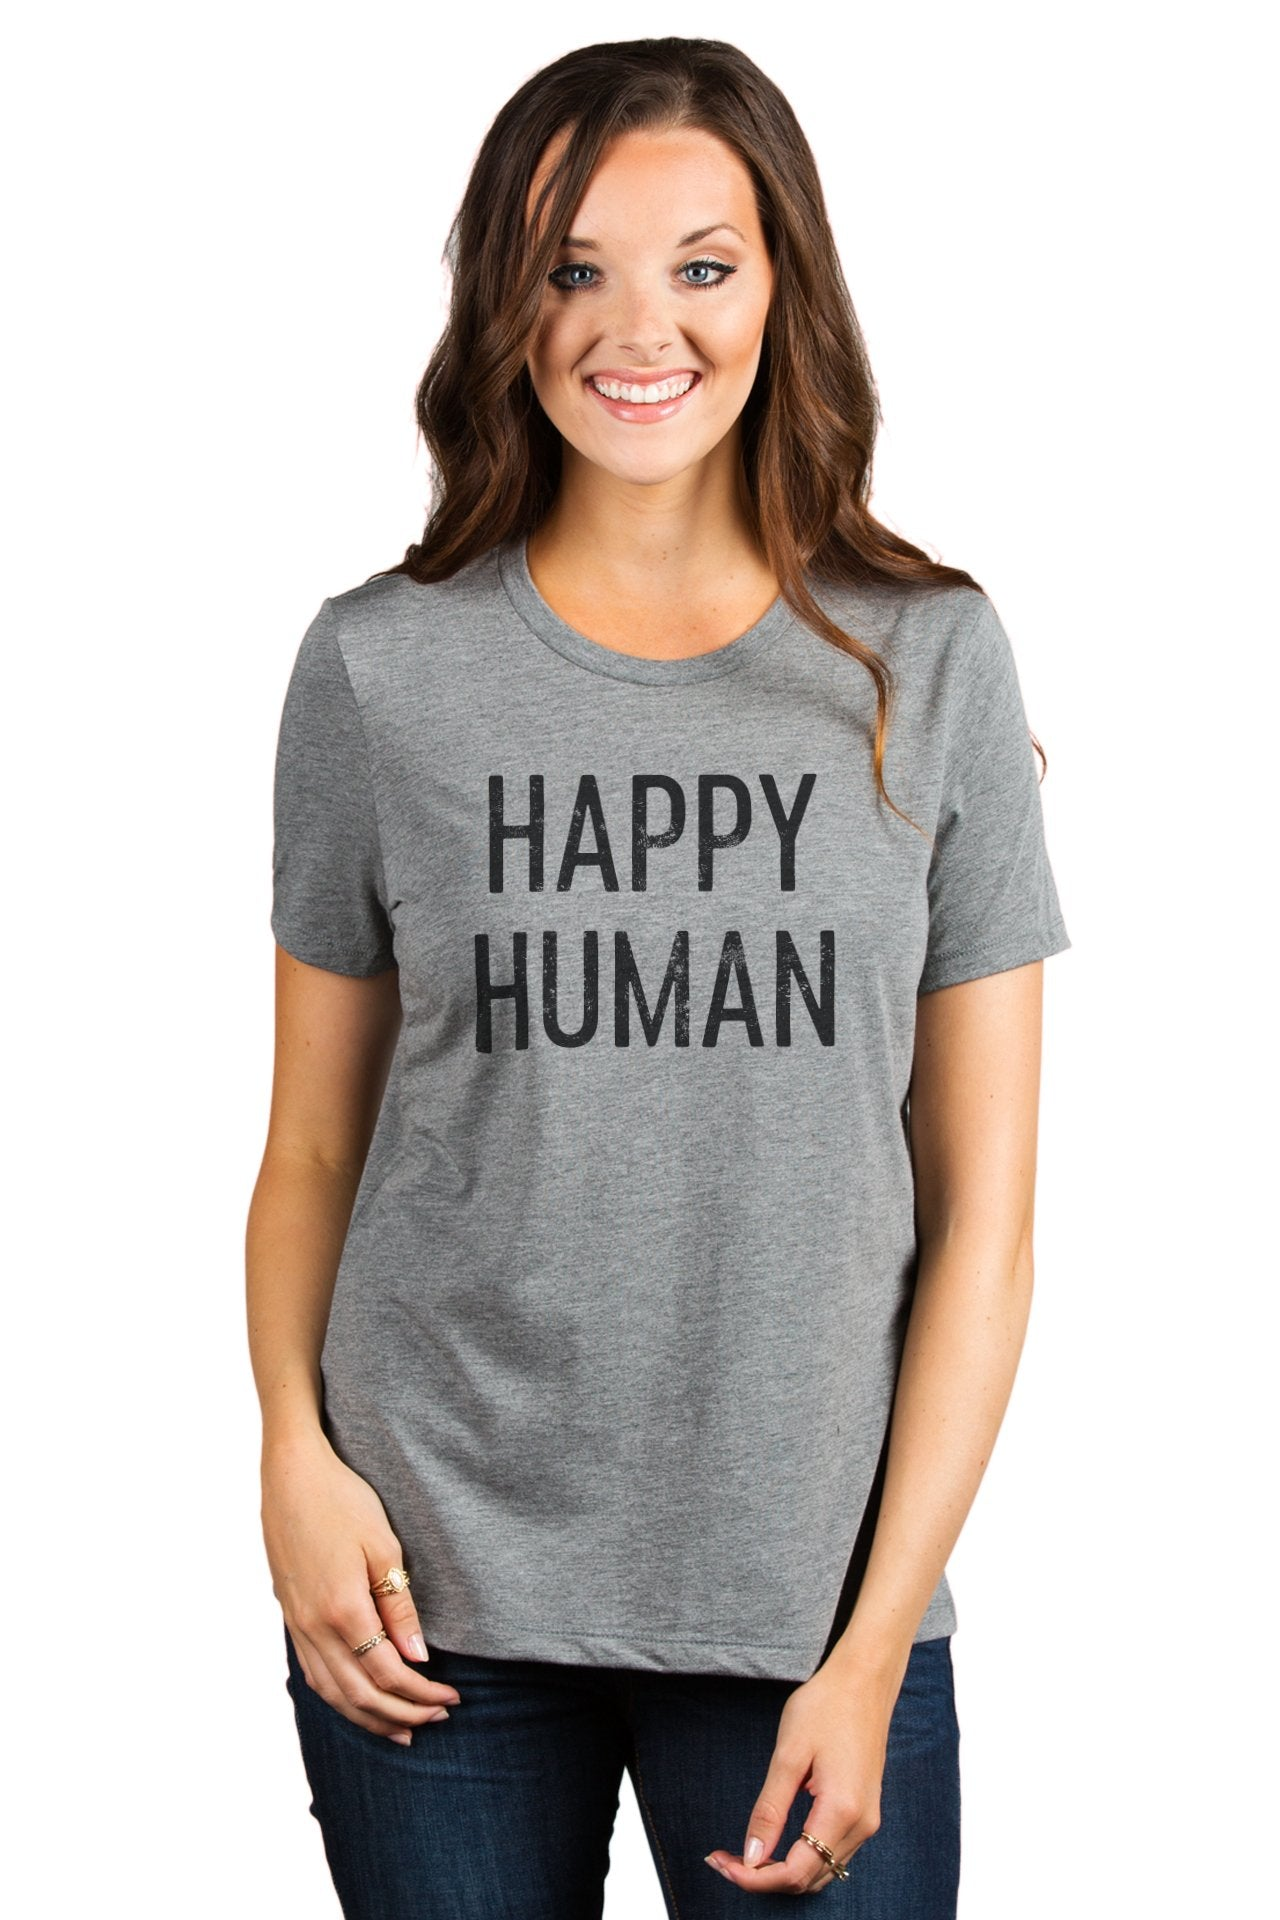 Happy Human Women's Relaxed Crewneck T-Shirt Top Tee Heather Grey